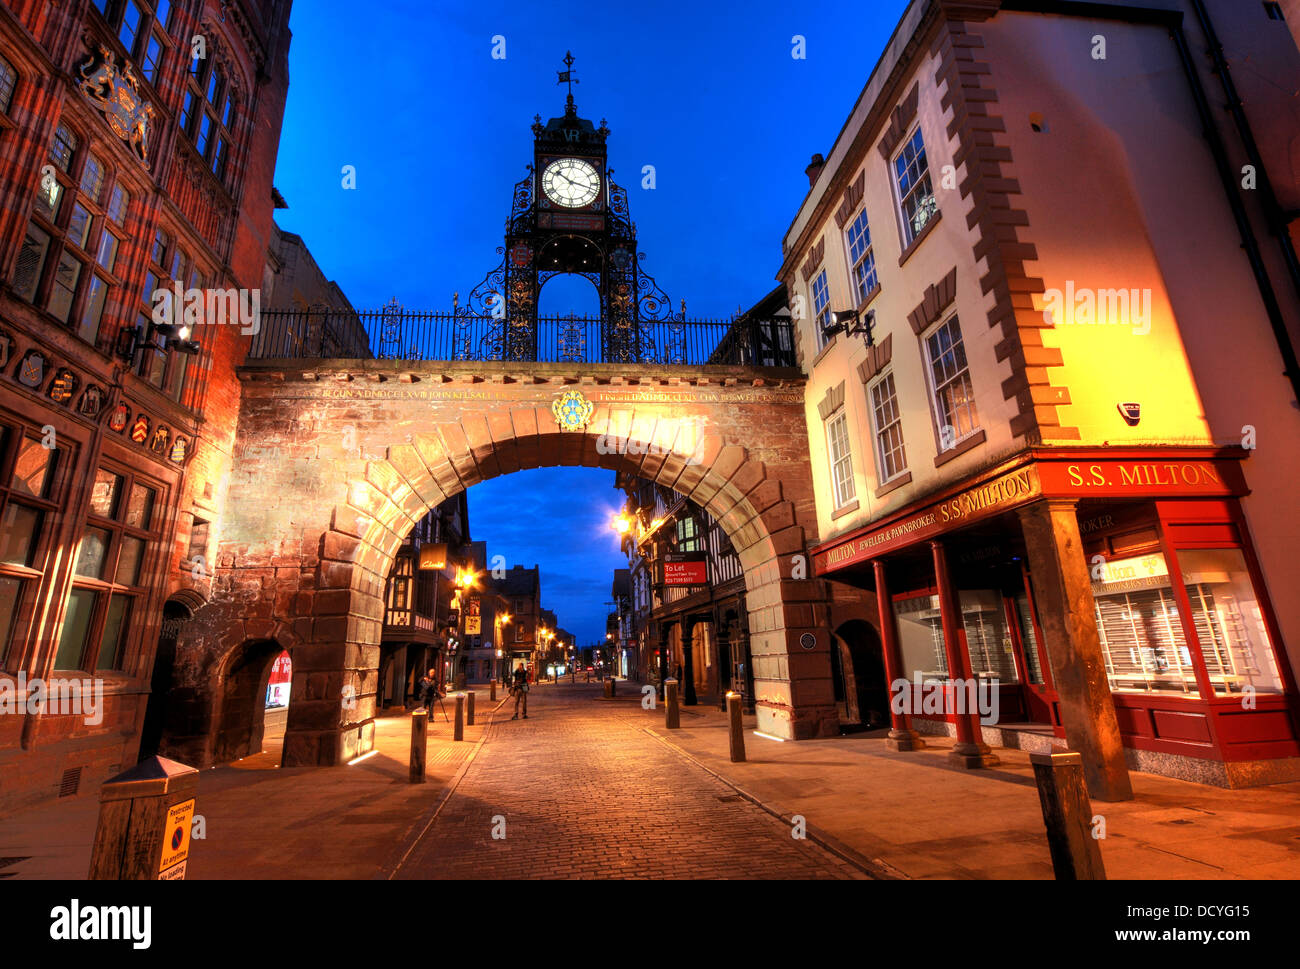 in the city of Chester, NW England UK taken at dusk Stock Photo